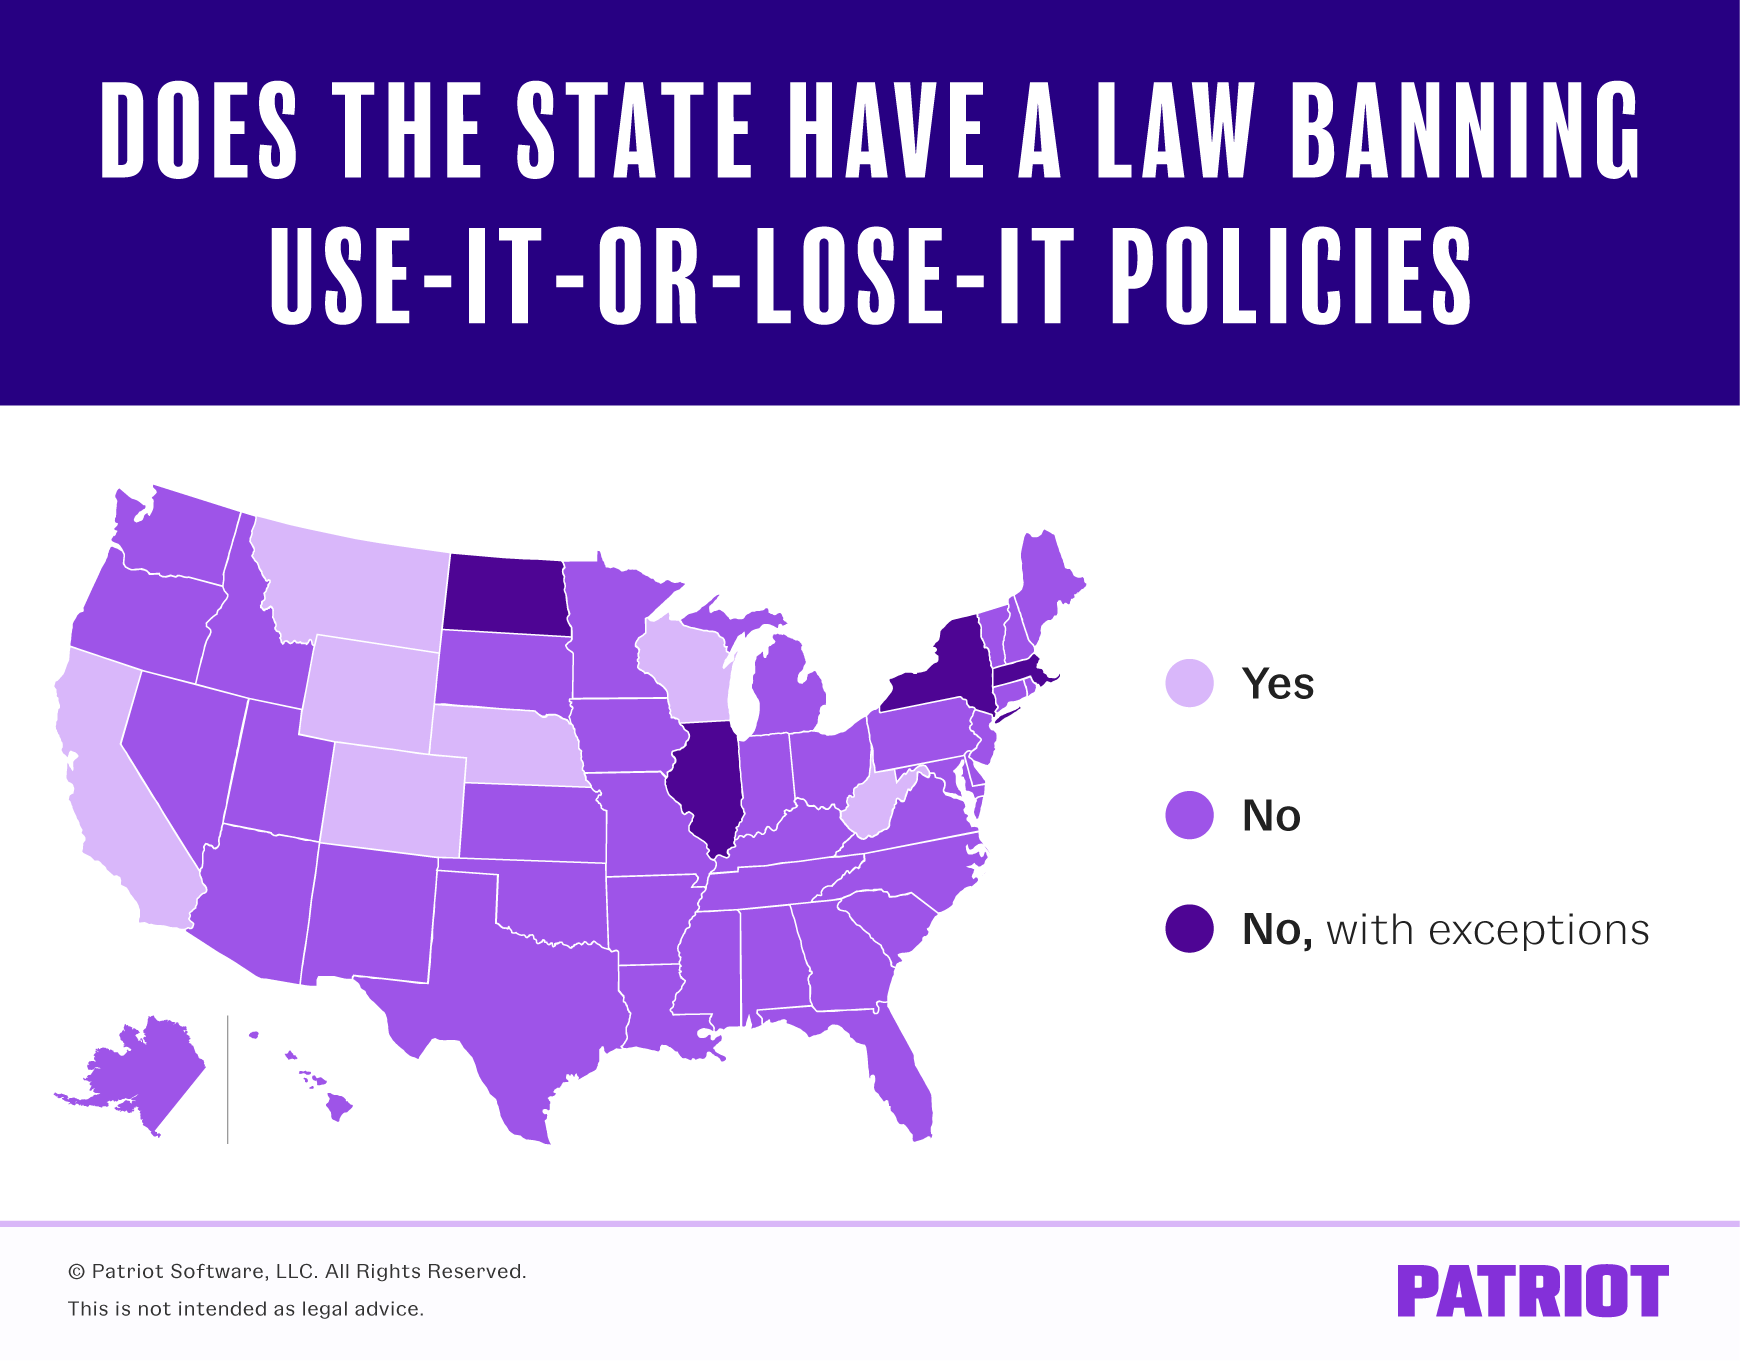 states that have a law banning use-it-or-lose-it policies map